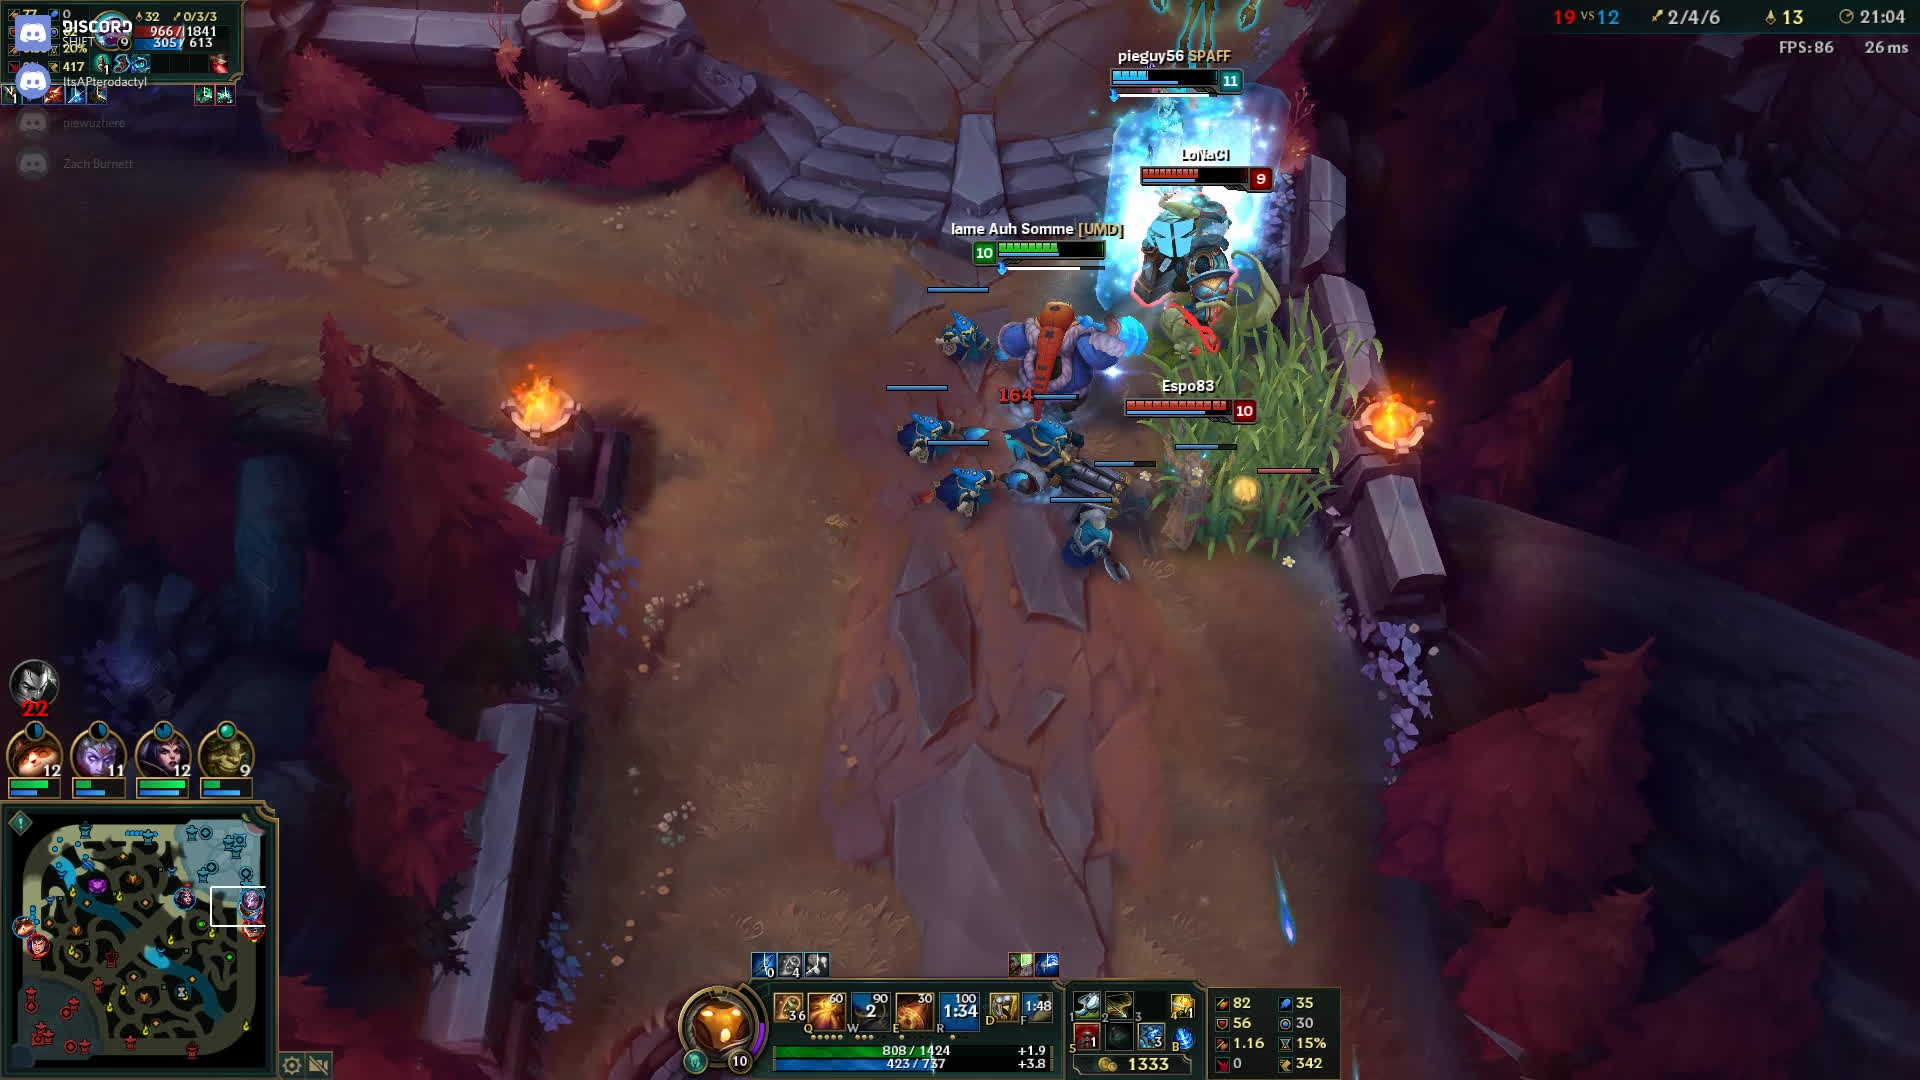 bardmains, 100% planned, totally not an accident triple kill GIFs